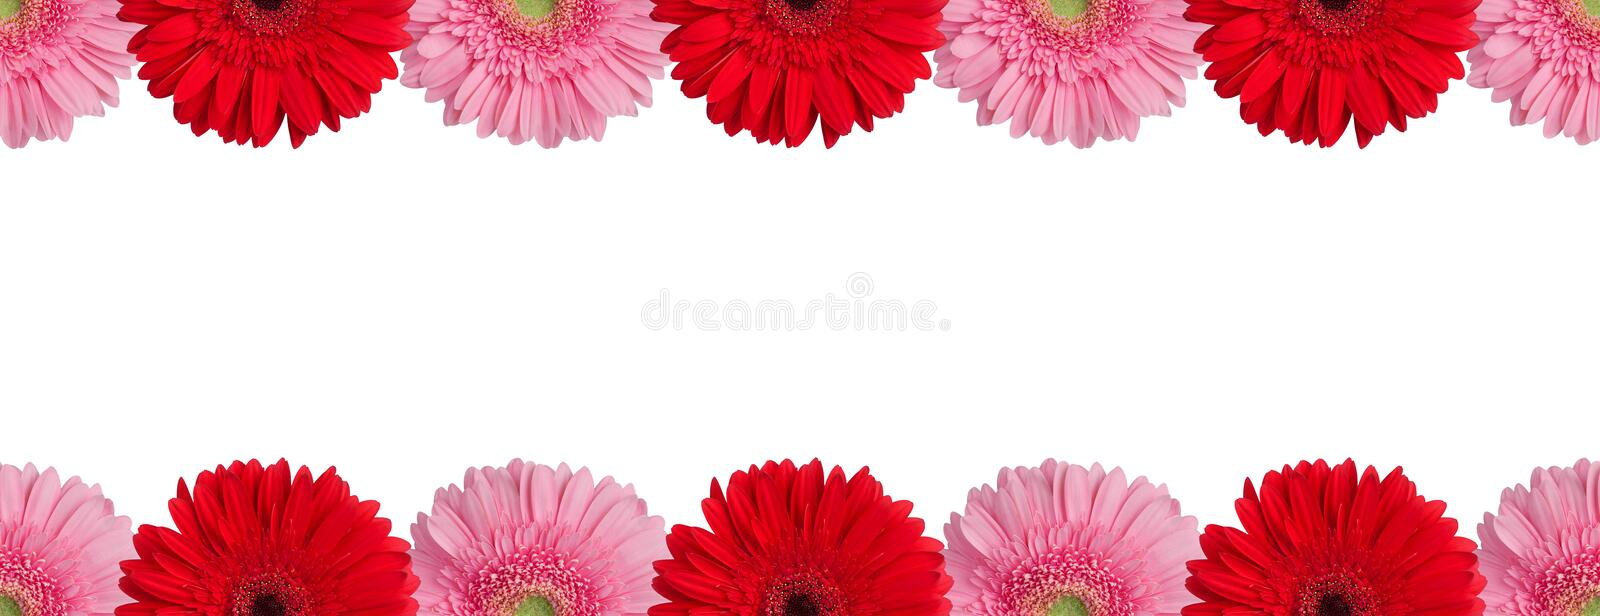 Red, orange and pink gerbera flowers border on white background isolated closeup, gerber flower seamless pattern, decorative frame royalty free stock photography